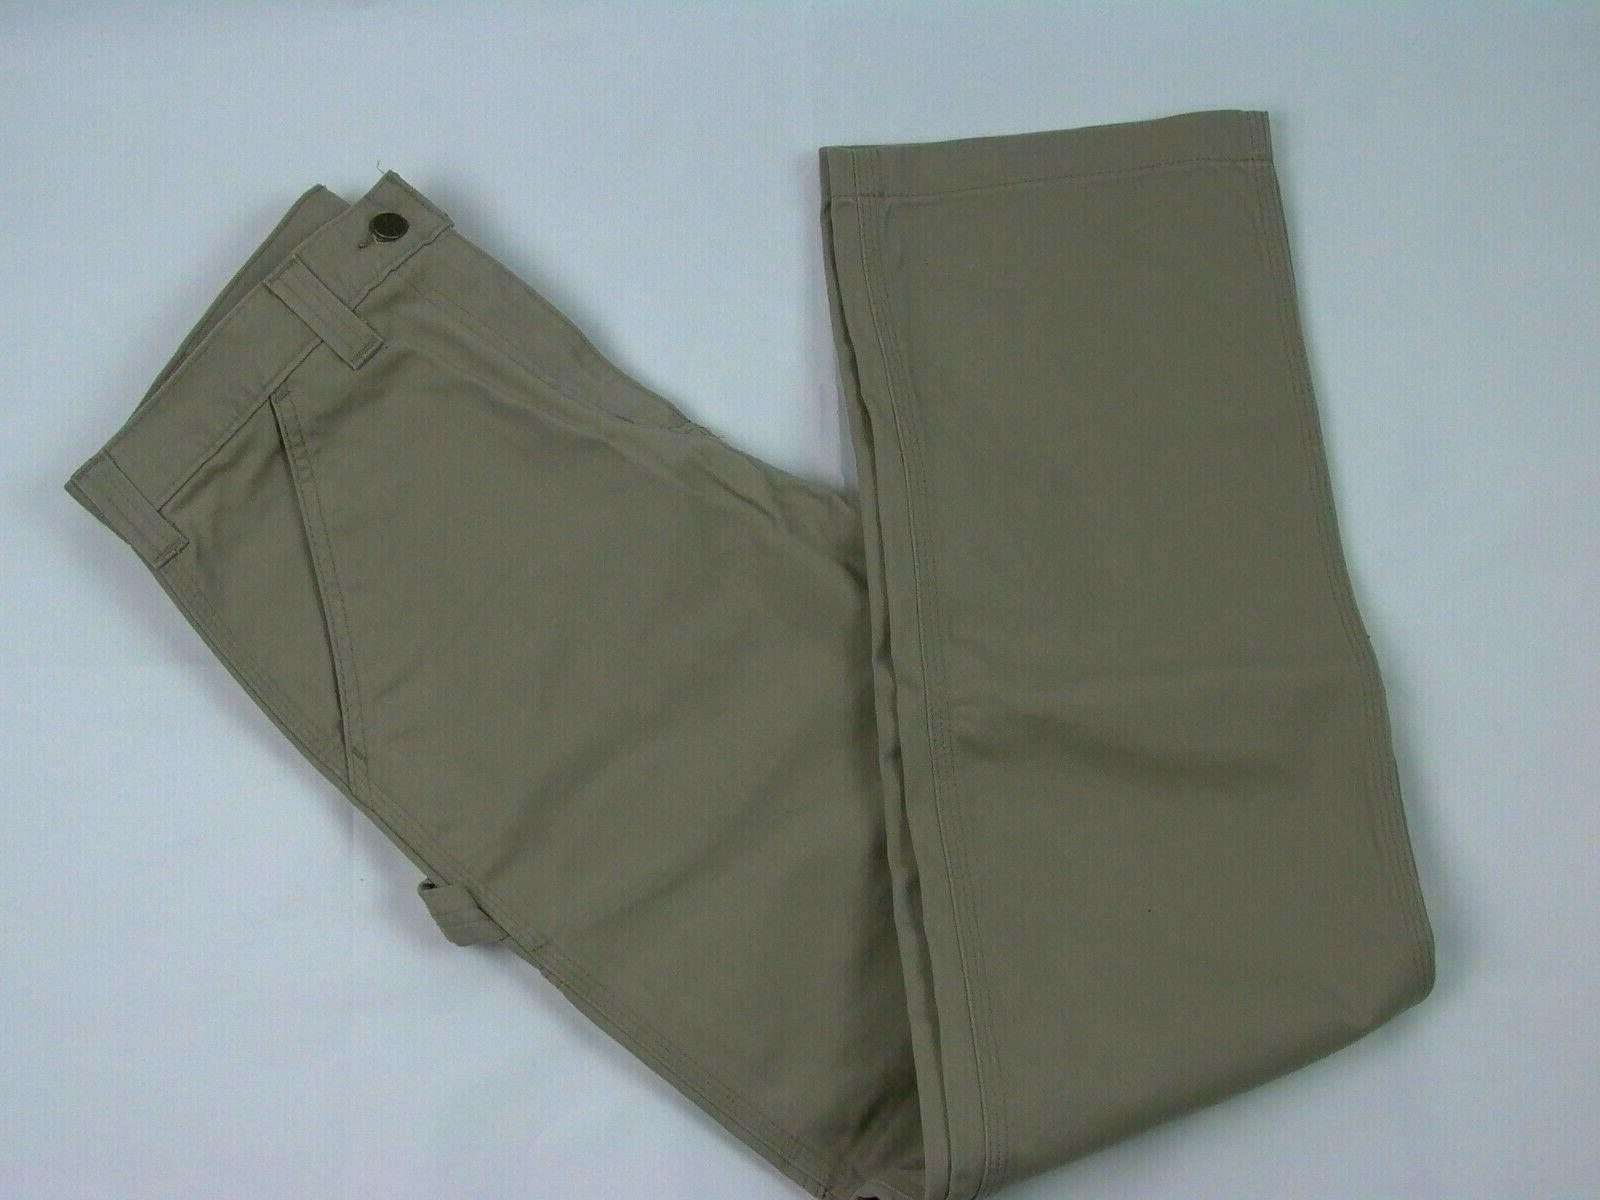 New Relaxed Fit Washed Twill x 32 Khaki Cargo